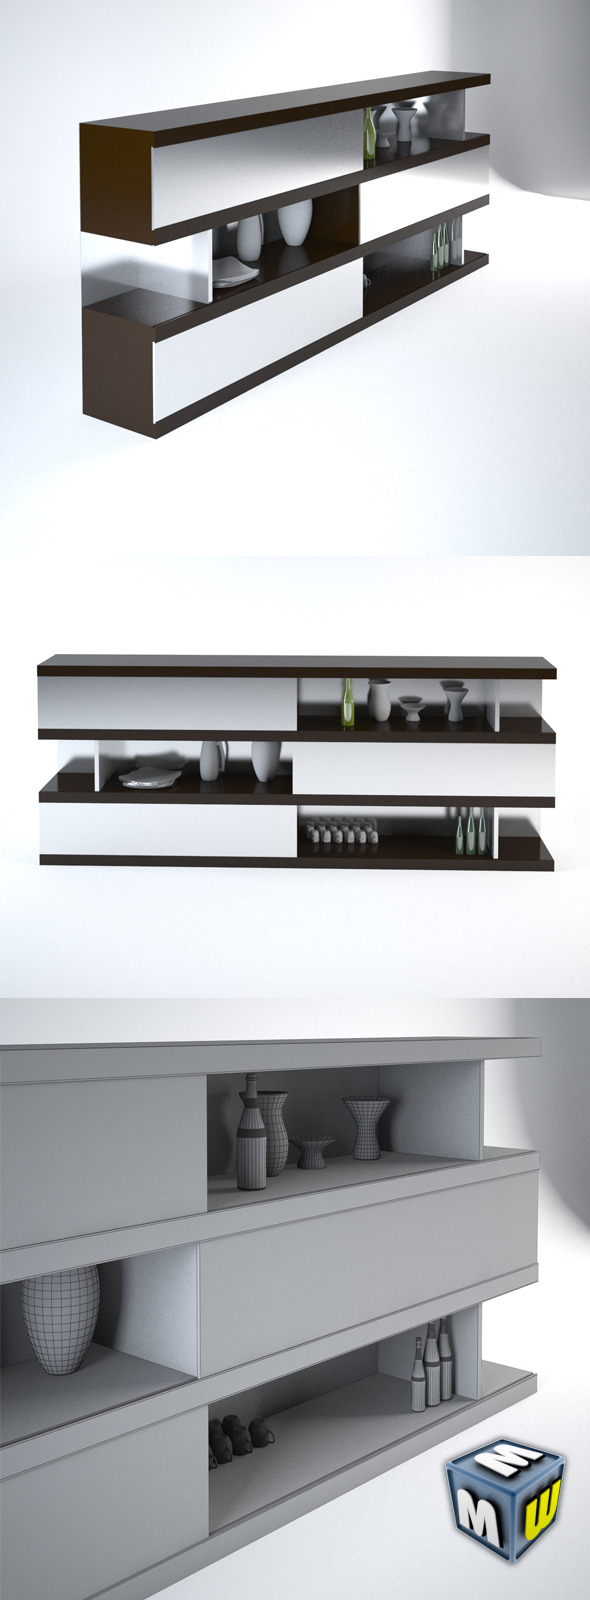 3DOcean Shelf MAX 2011 5646221